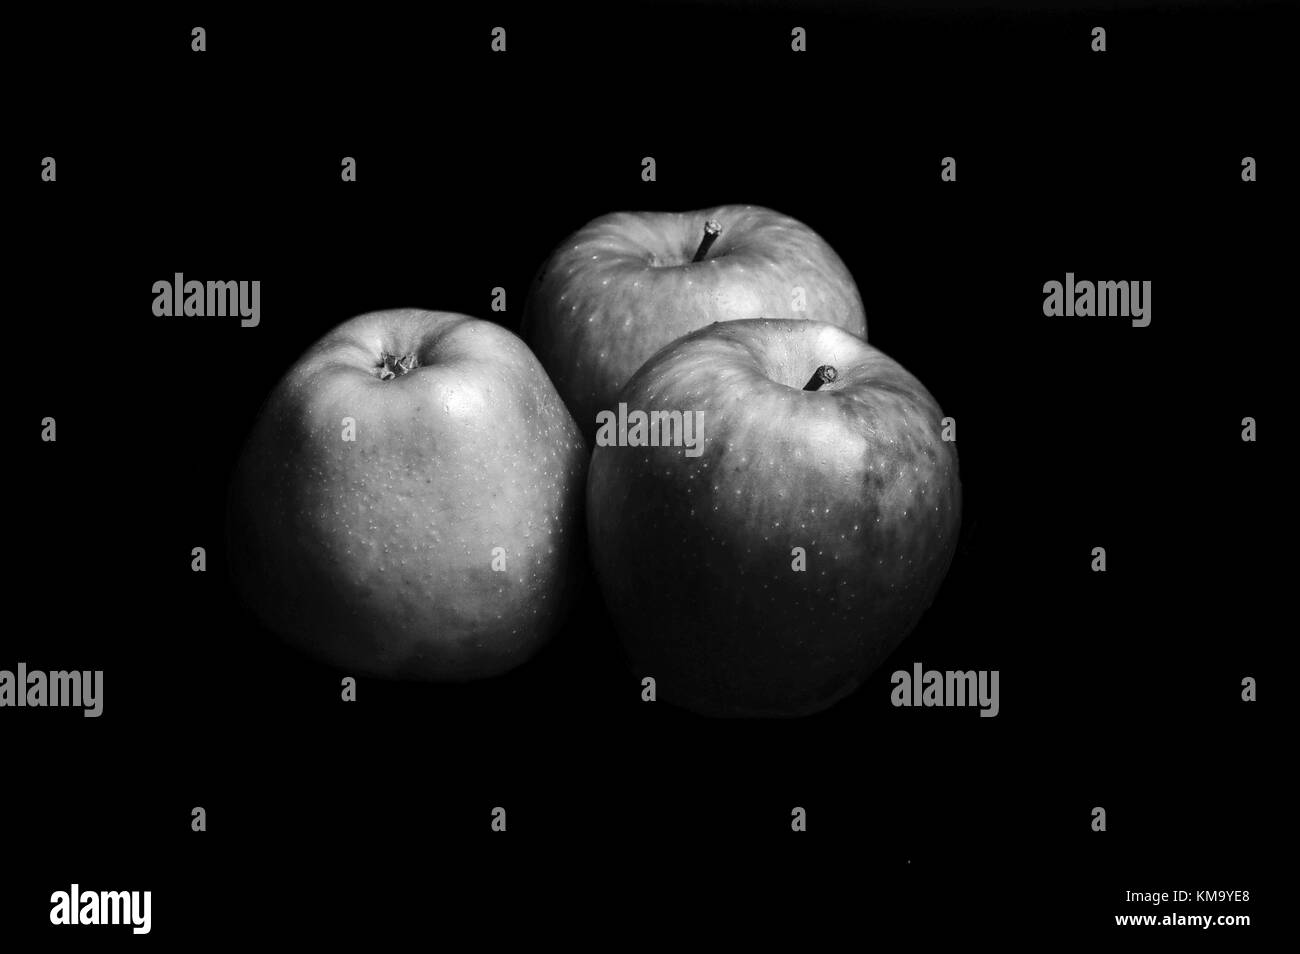 trhee apples with black and white, fruit - Stock Image